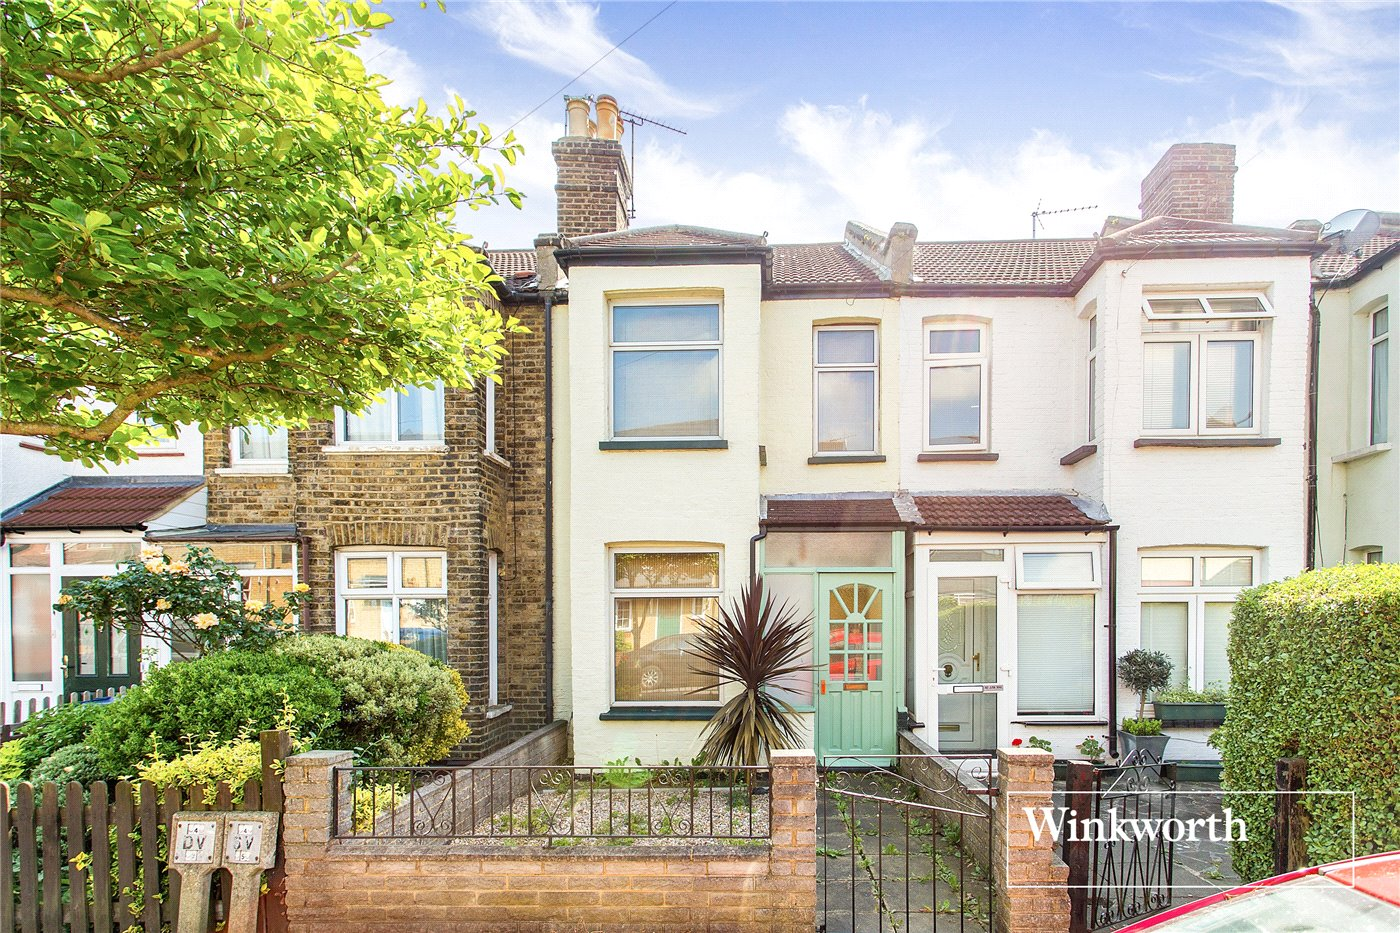 2 Bedrooms Terraced House for sale in Coleridge Road, North Finchley, London, N12